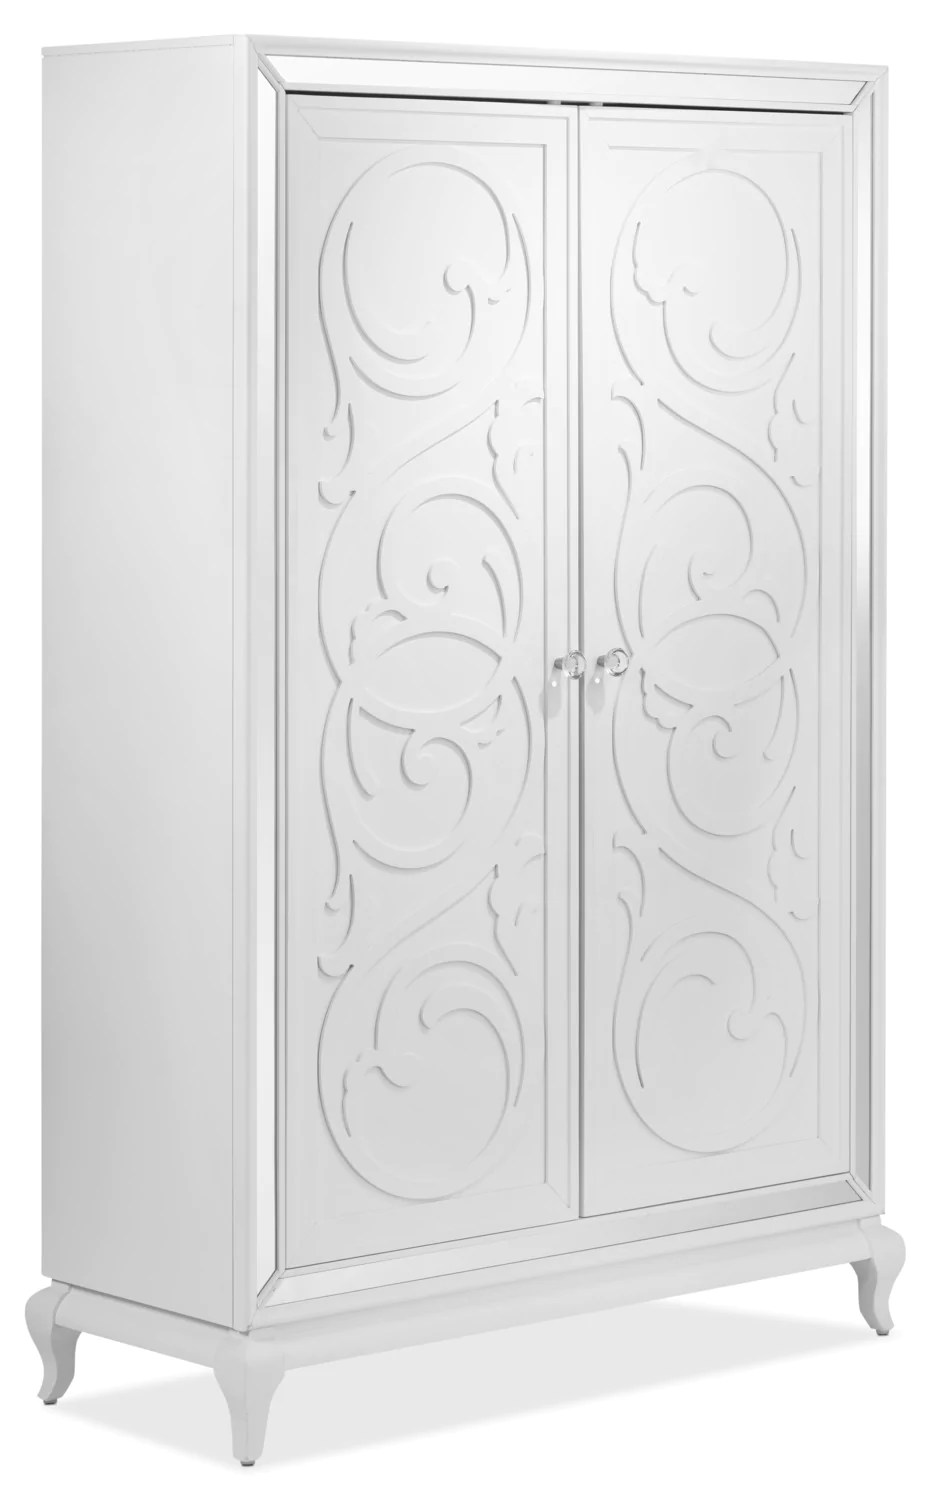 Armoire Metal Blanc Artic Ice Armoire Blanc